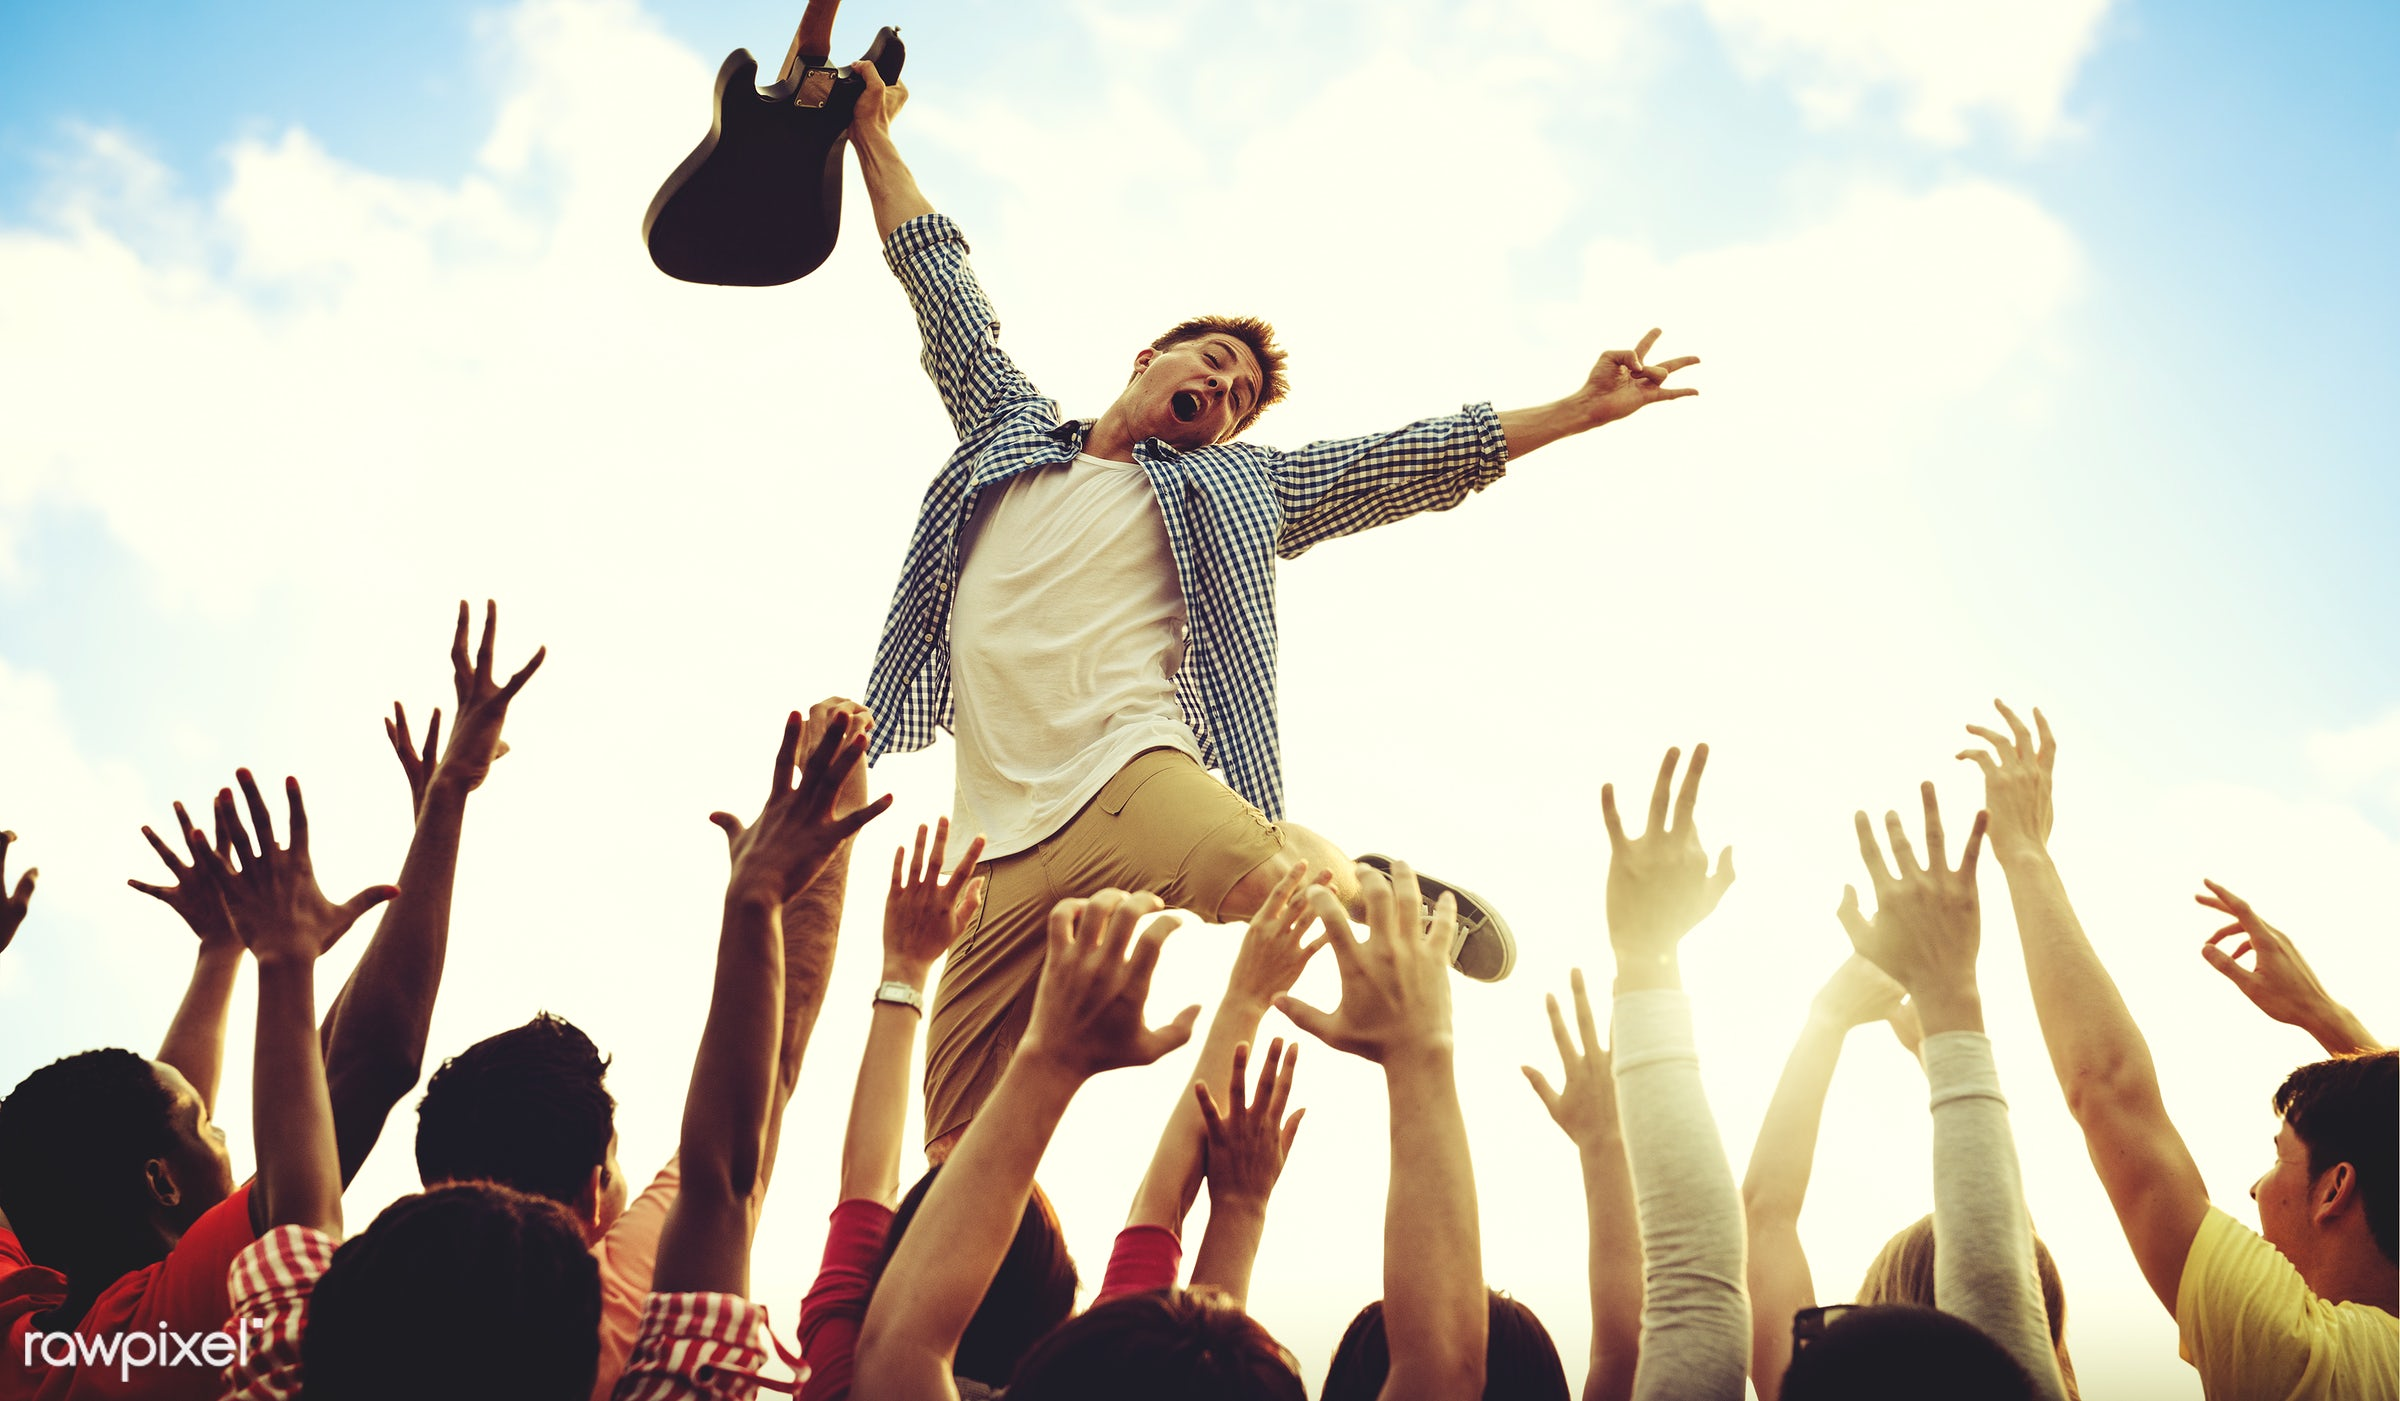 adolescence, arms raised, audience, carefree, celebration, cheerful, cloud, communication, community, concert, crowd,...